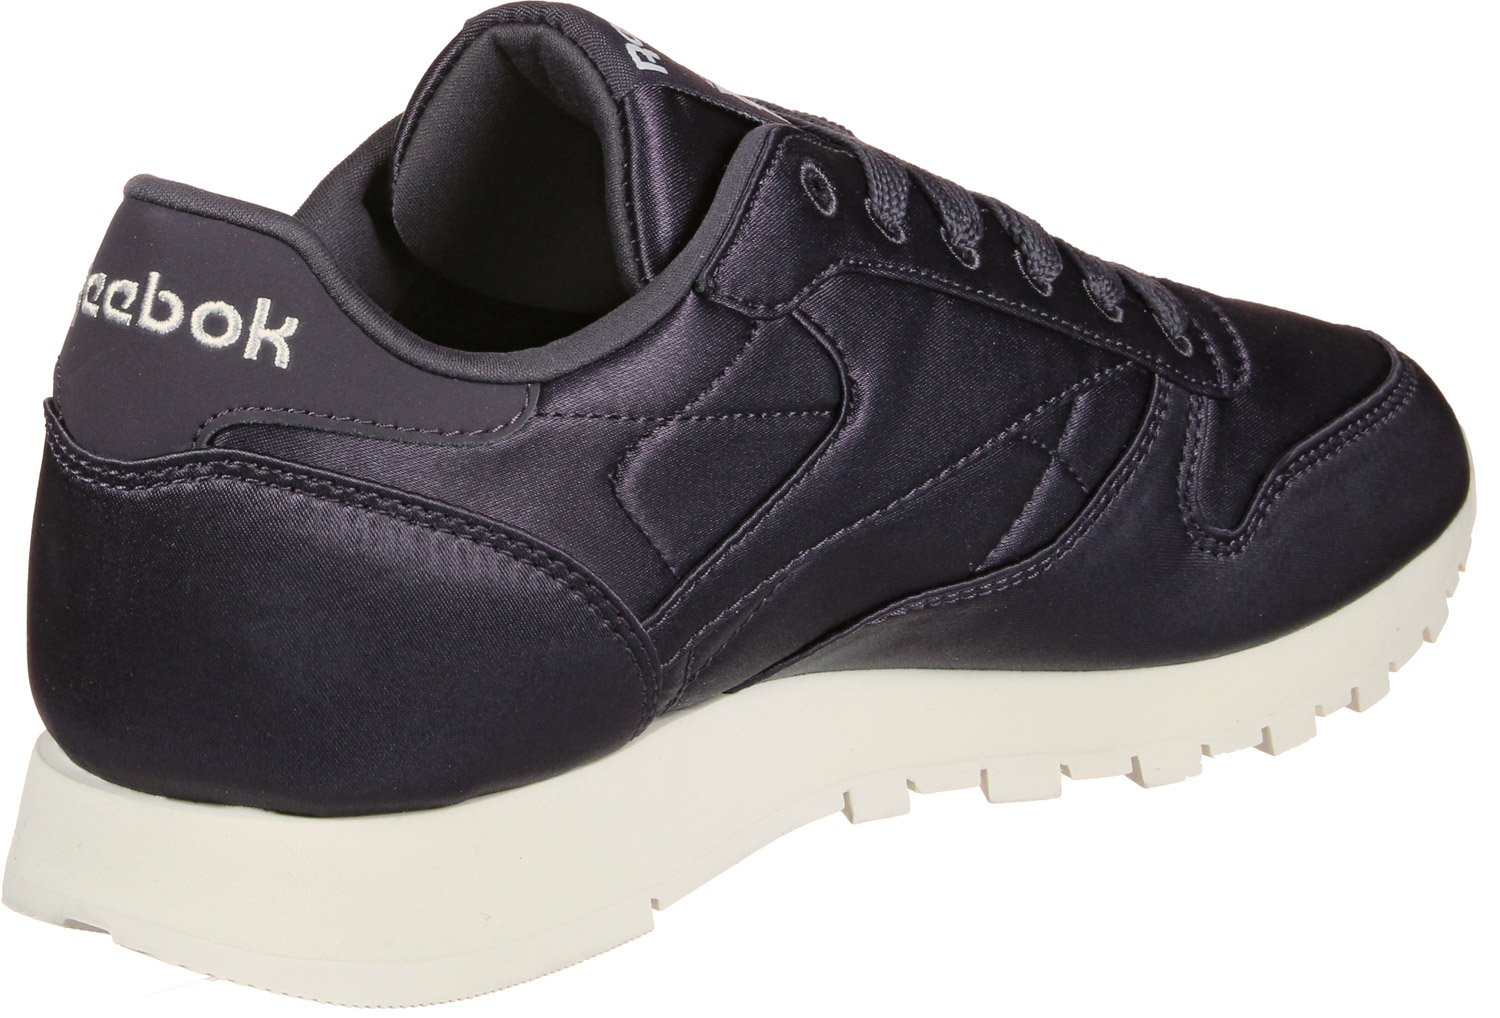 Reebok Classic Sneakers Leather Satin, Sneakers Basses Femme, Classic Femme, Rose/Blanc Gris eafec7c - deadsea.space